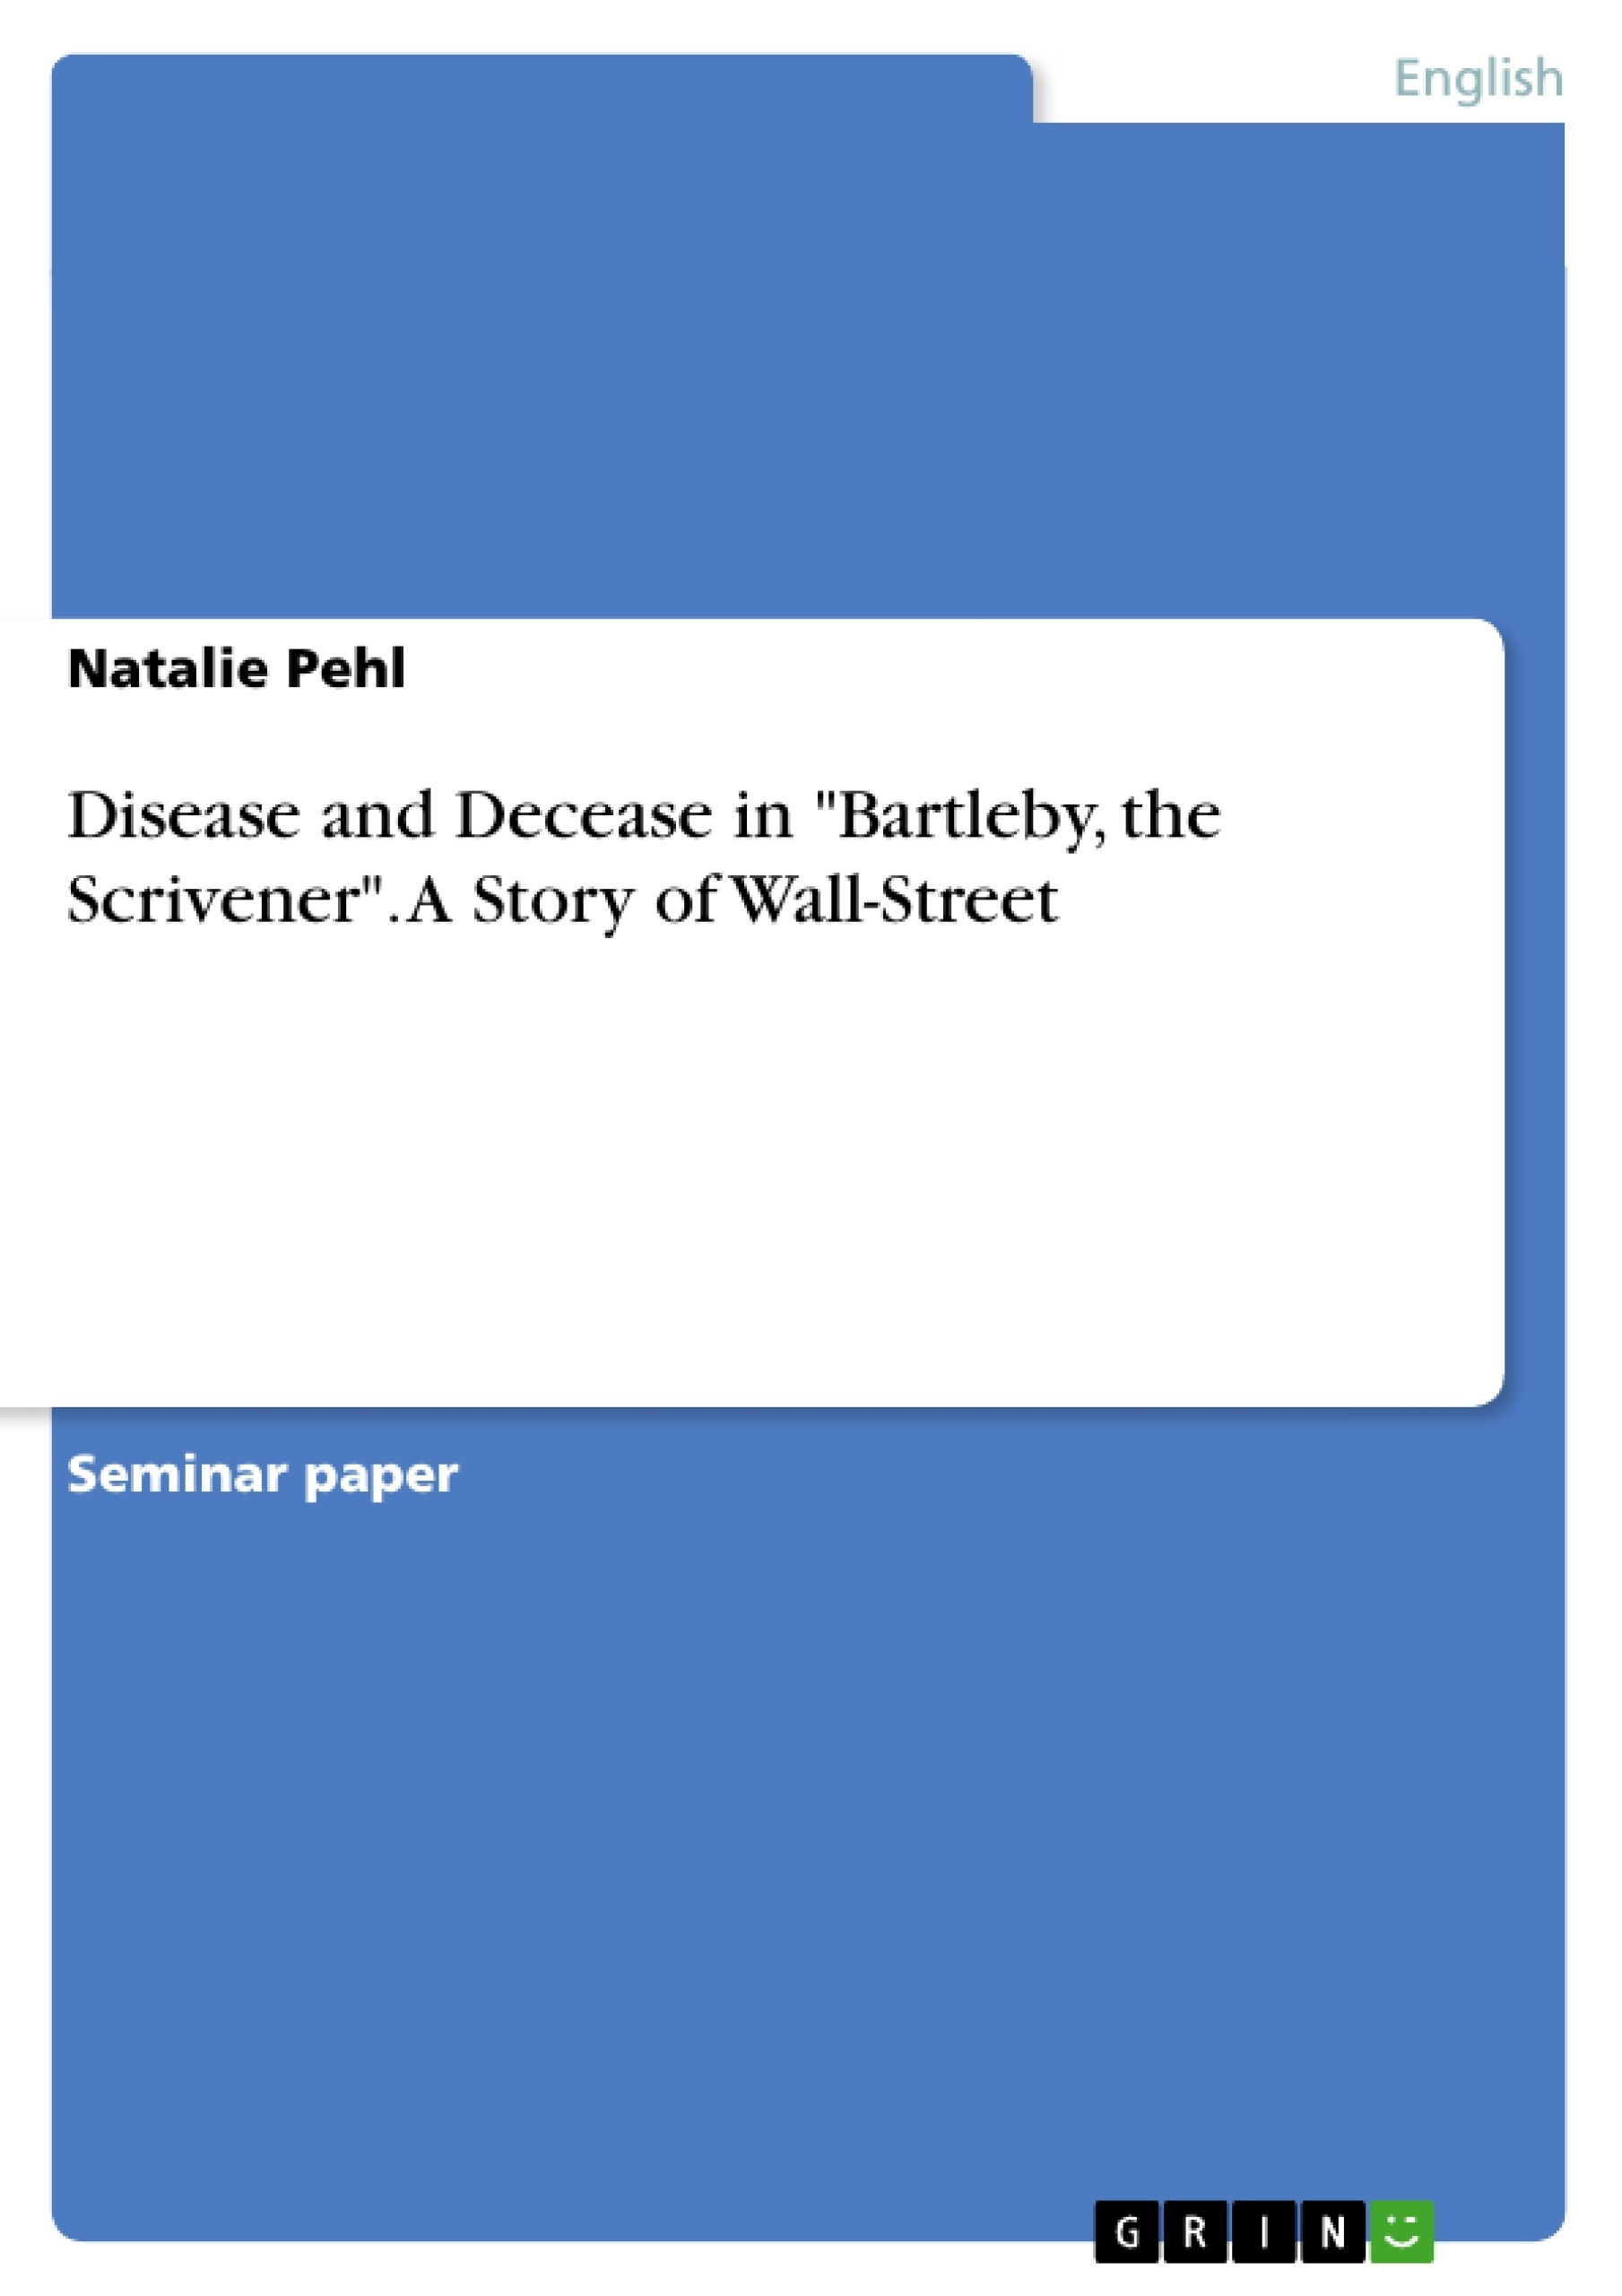 """Title: Disease and Decease in """"Bartleby, the Scrivener"""". A Story of Wall-Street"""